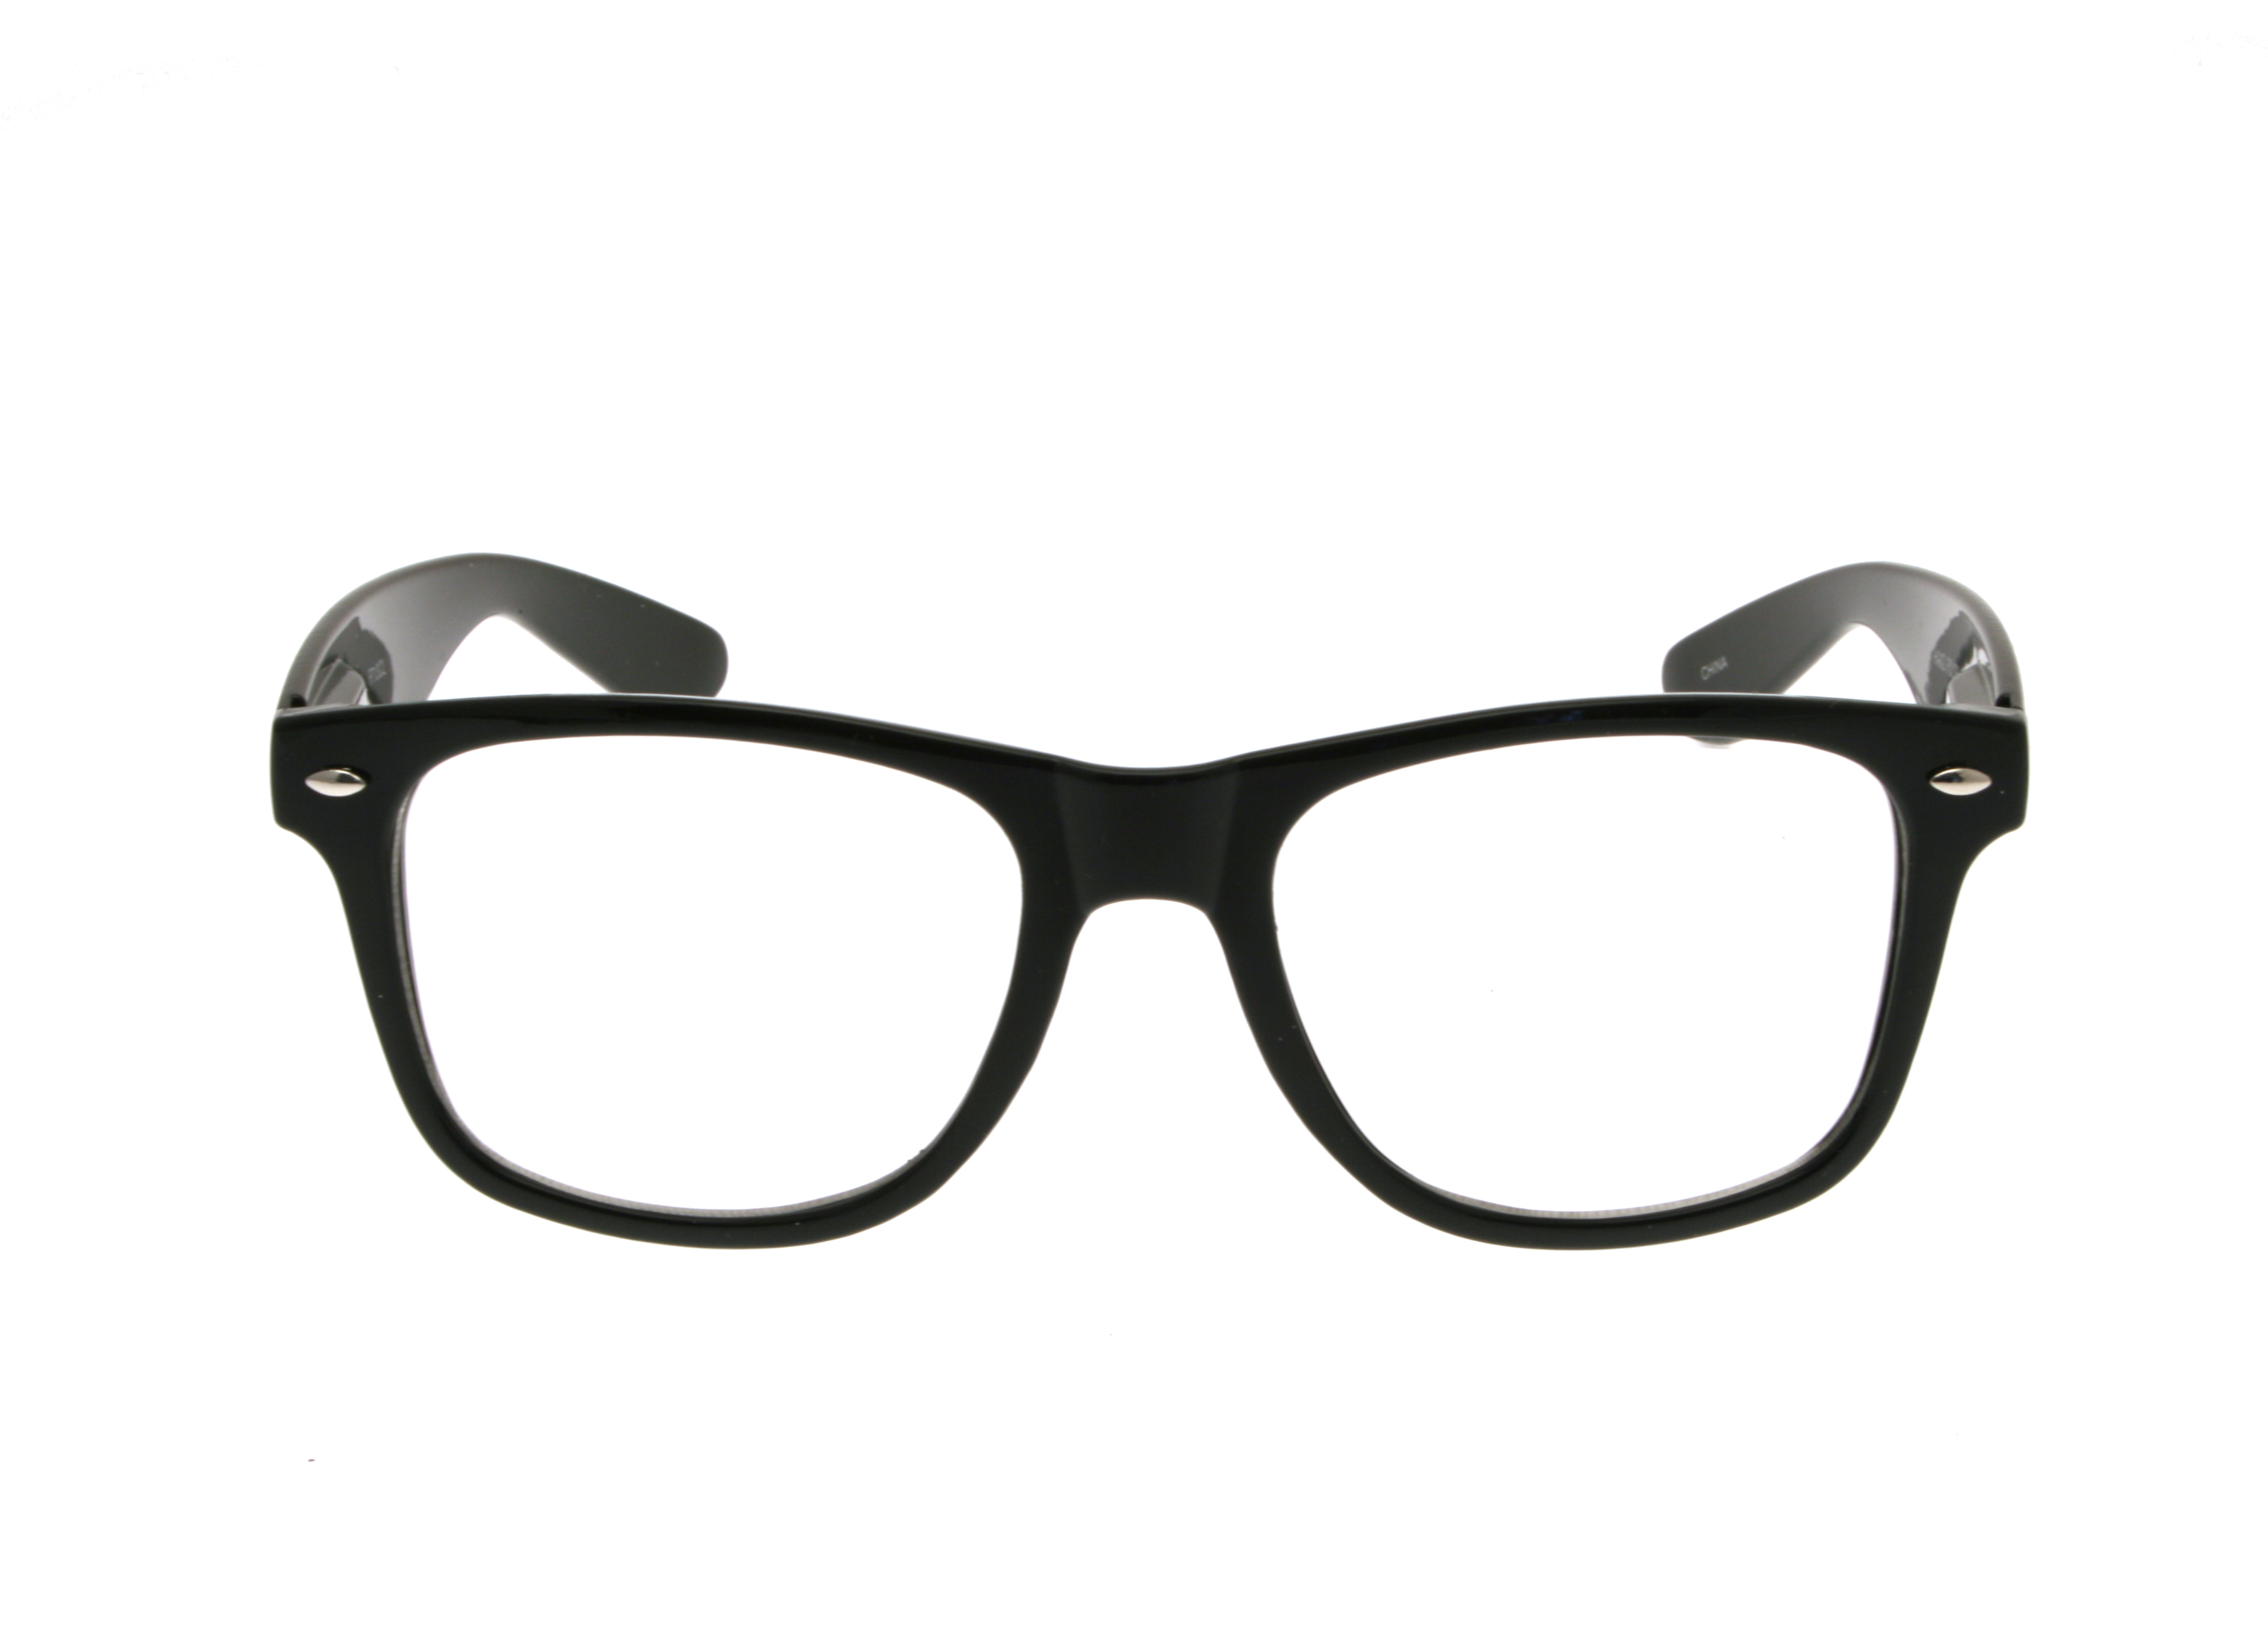 Nerd glasses clipart images image